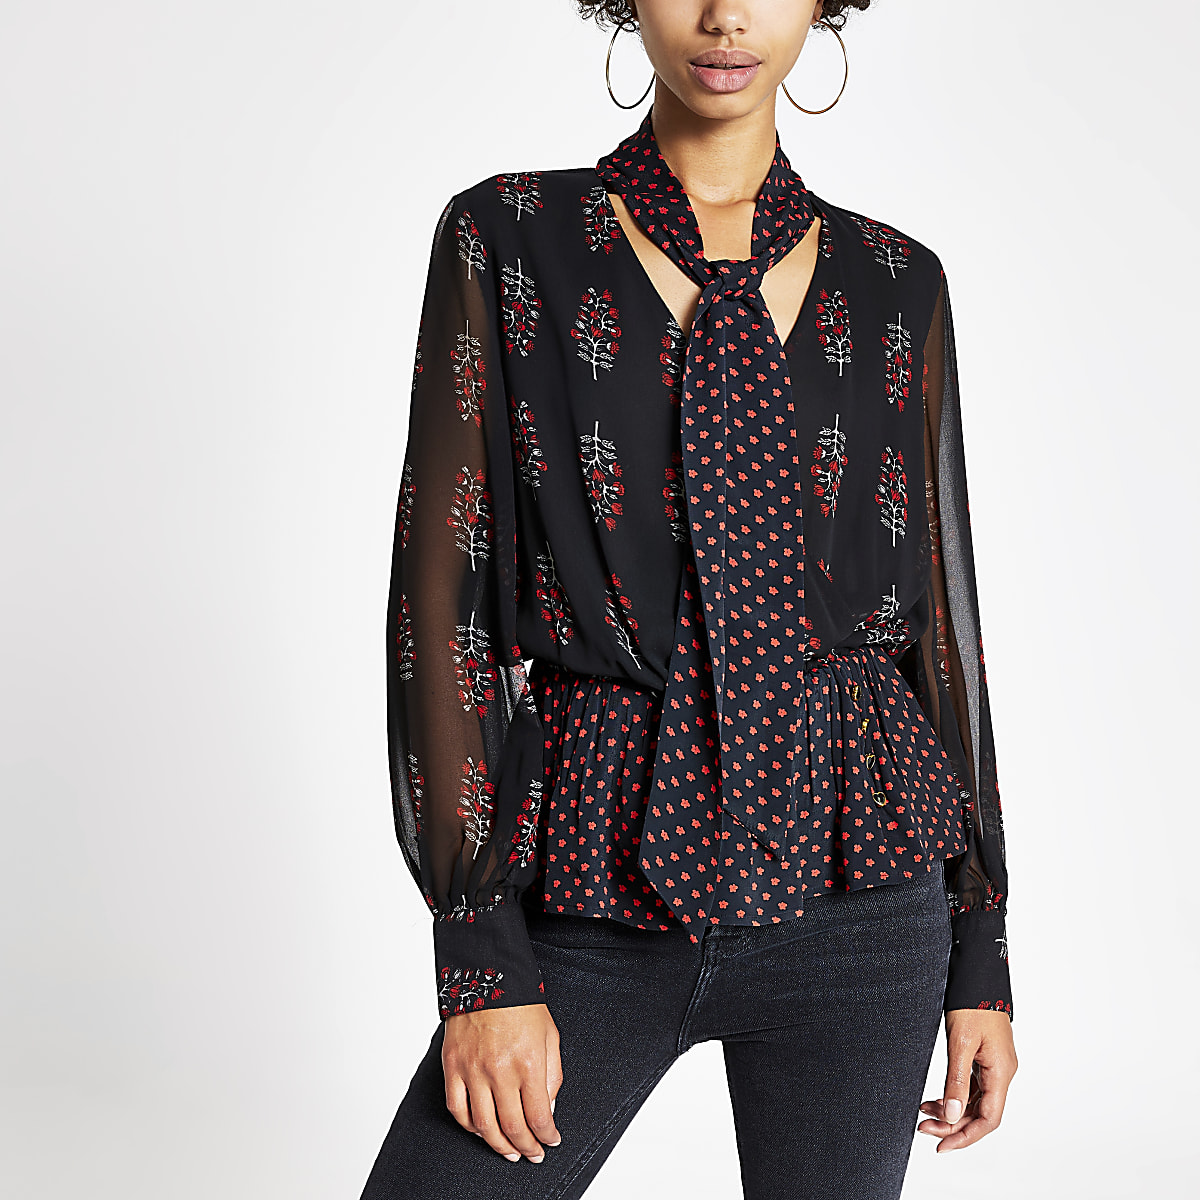 Black floral tie neck sheer sleeve blouse